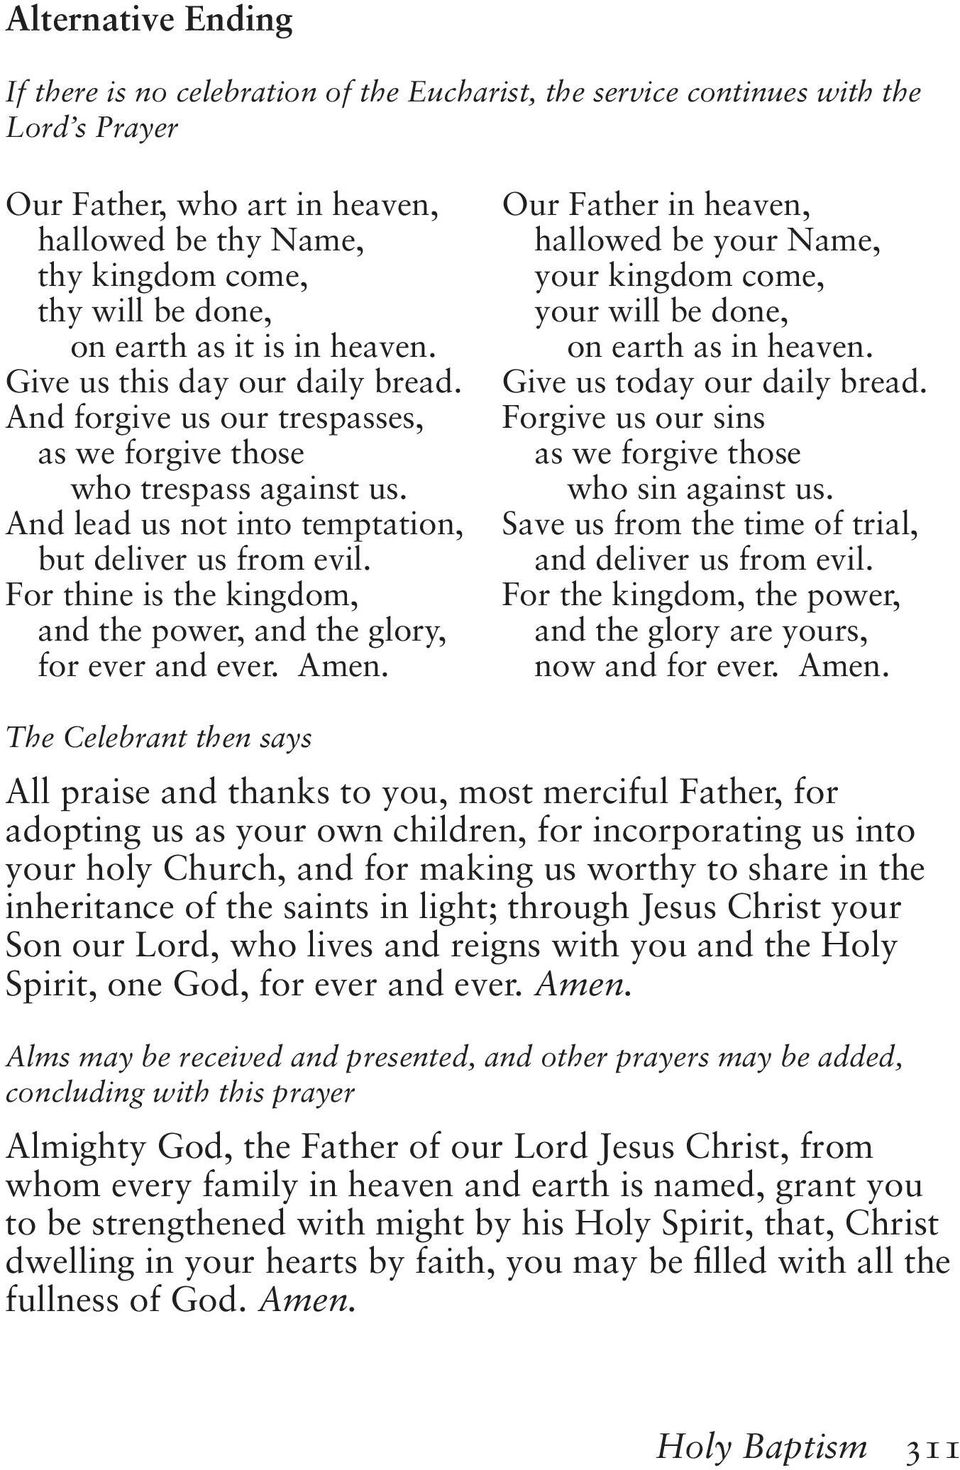 The Book of Common Prayer, Formatted as the original - PDF